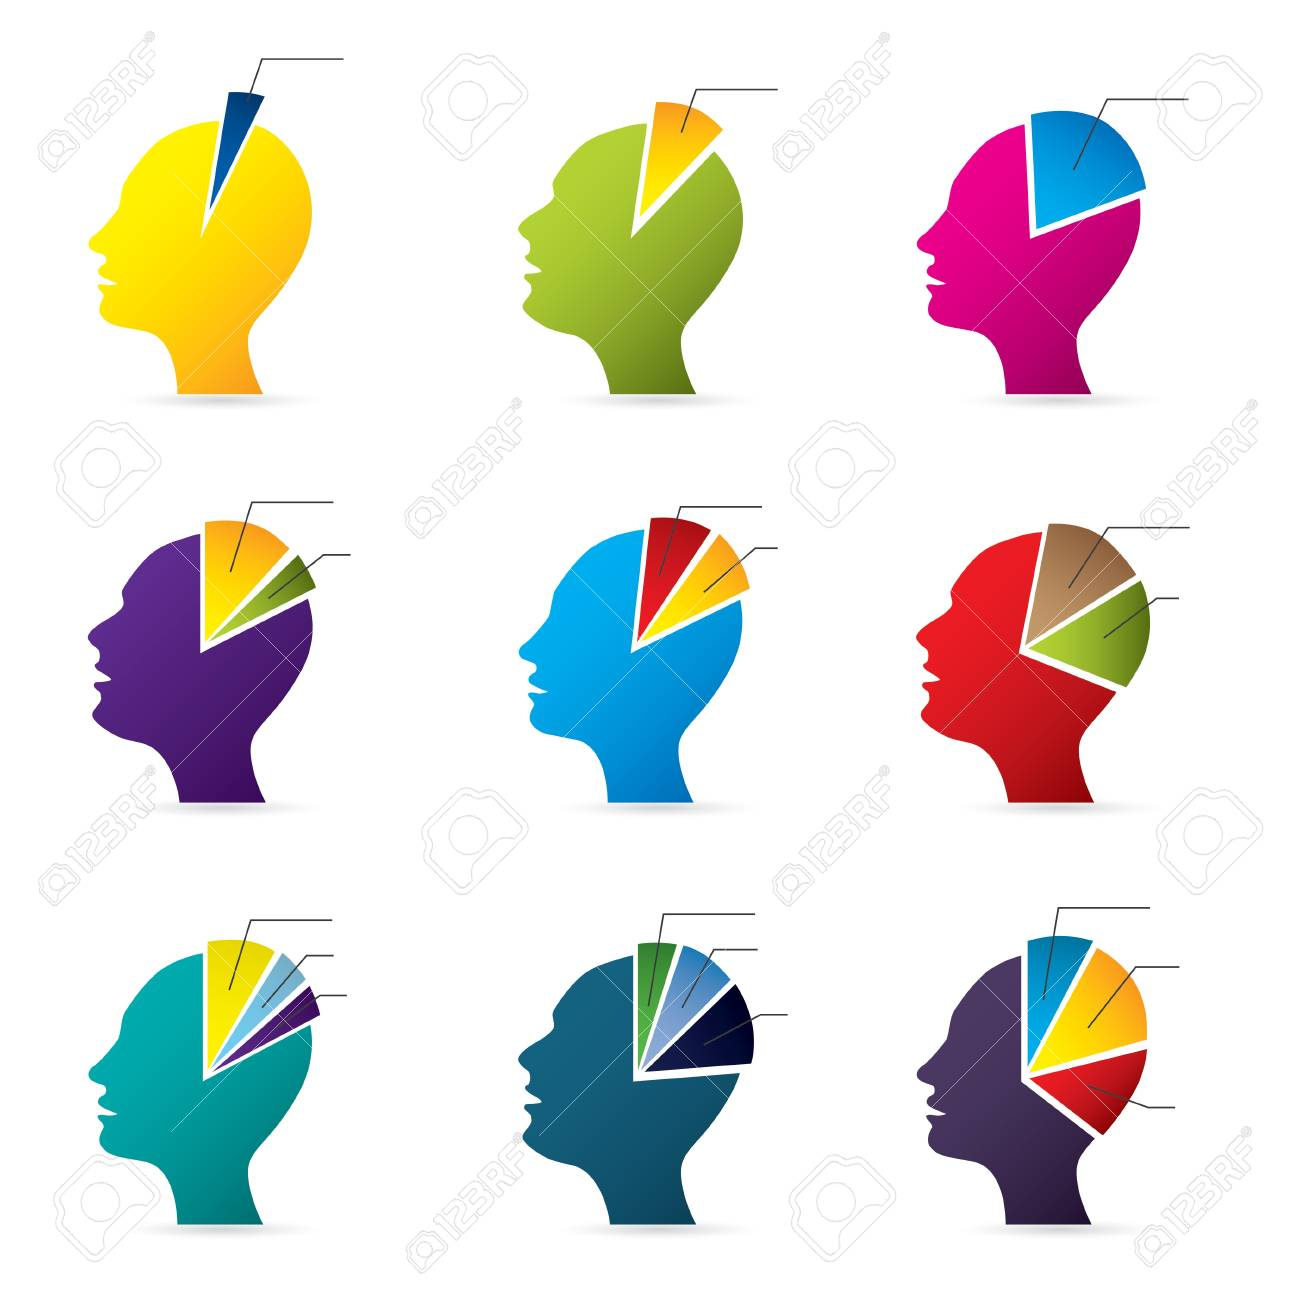 Human head infographic design with diagram shapes Stock Vector - 19268326